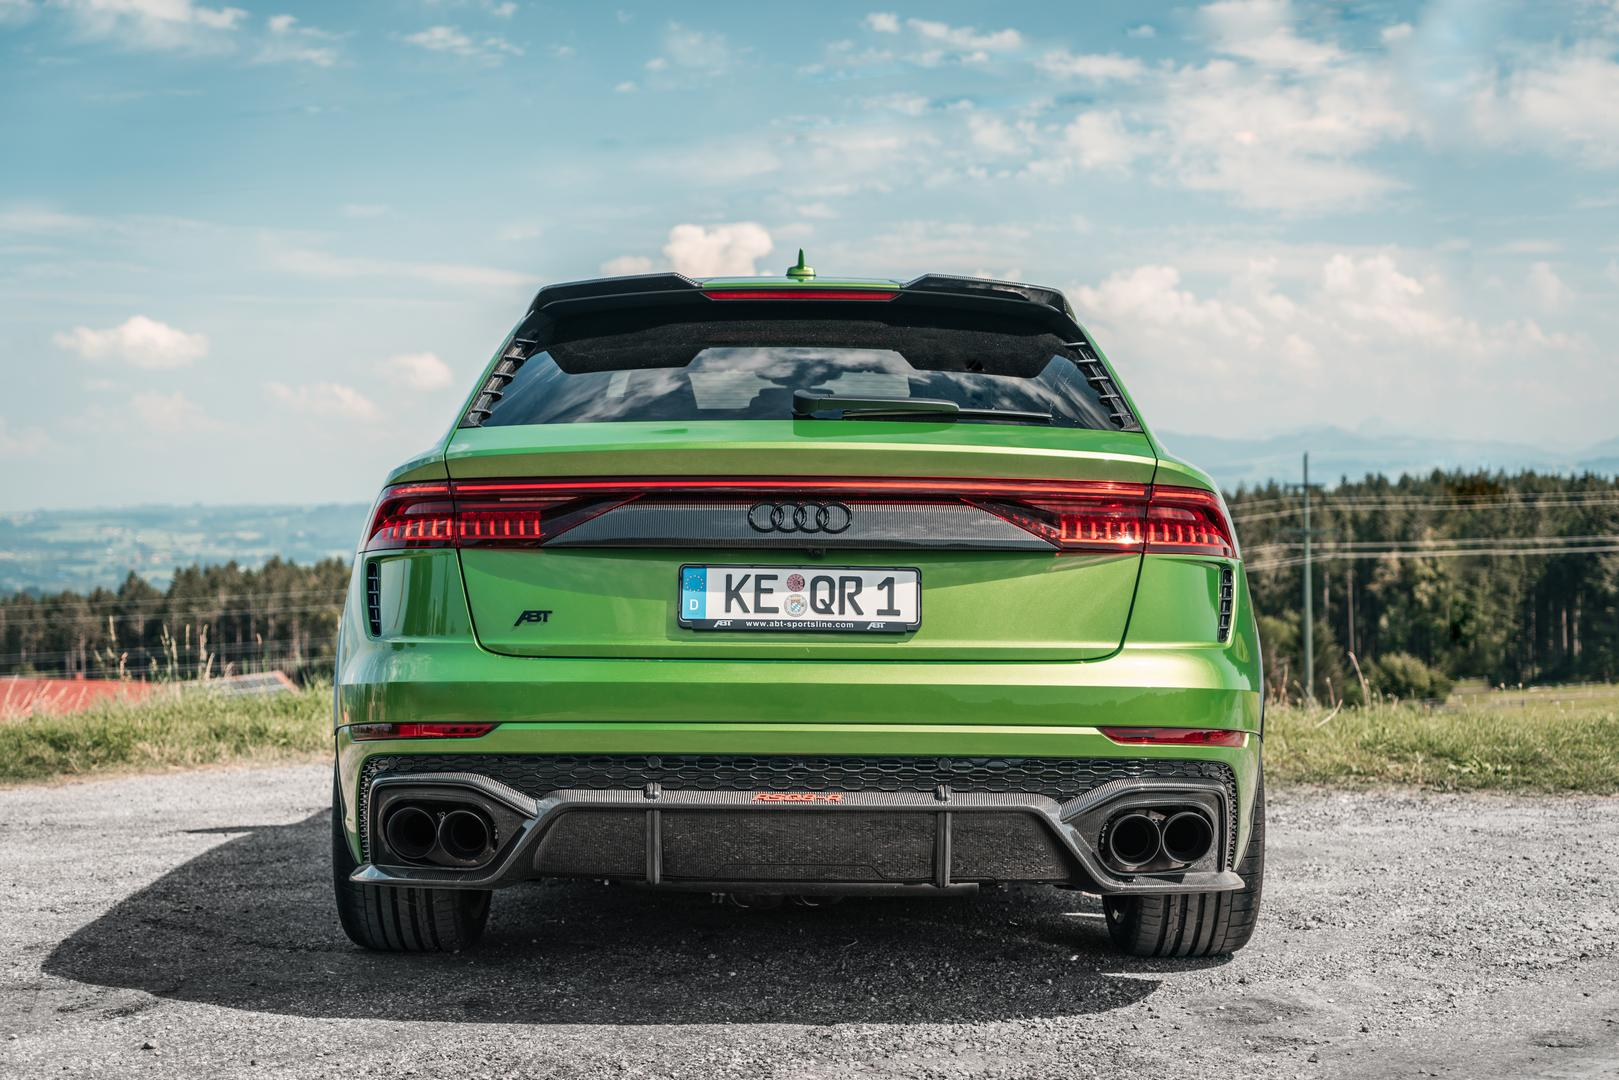 Audi RS Q8 Rear Lights